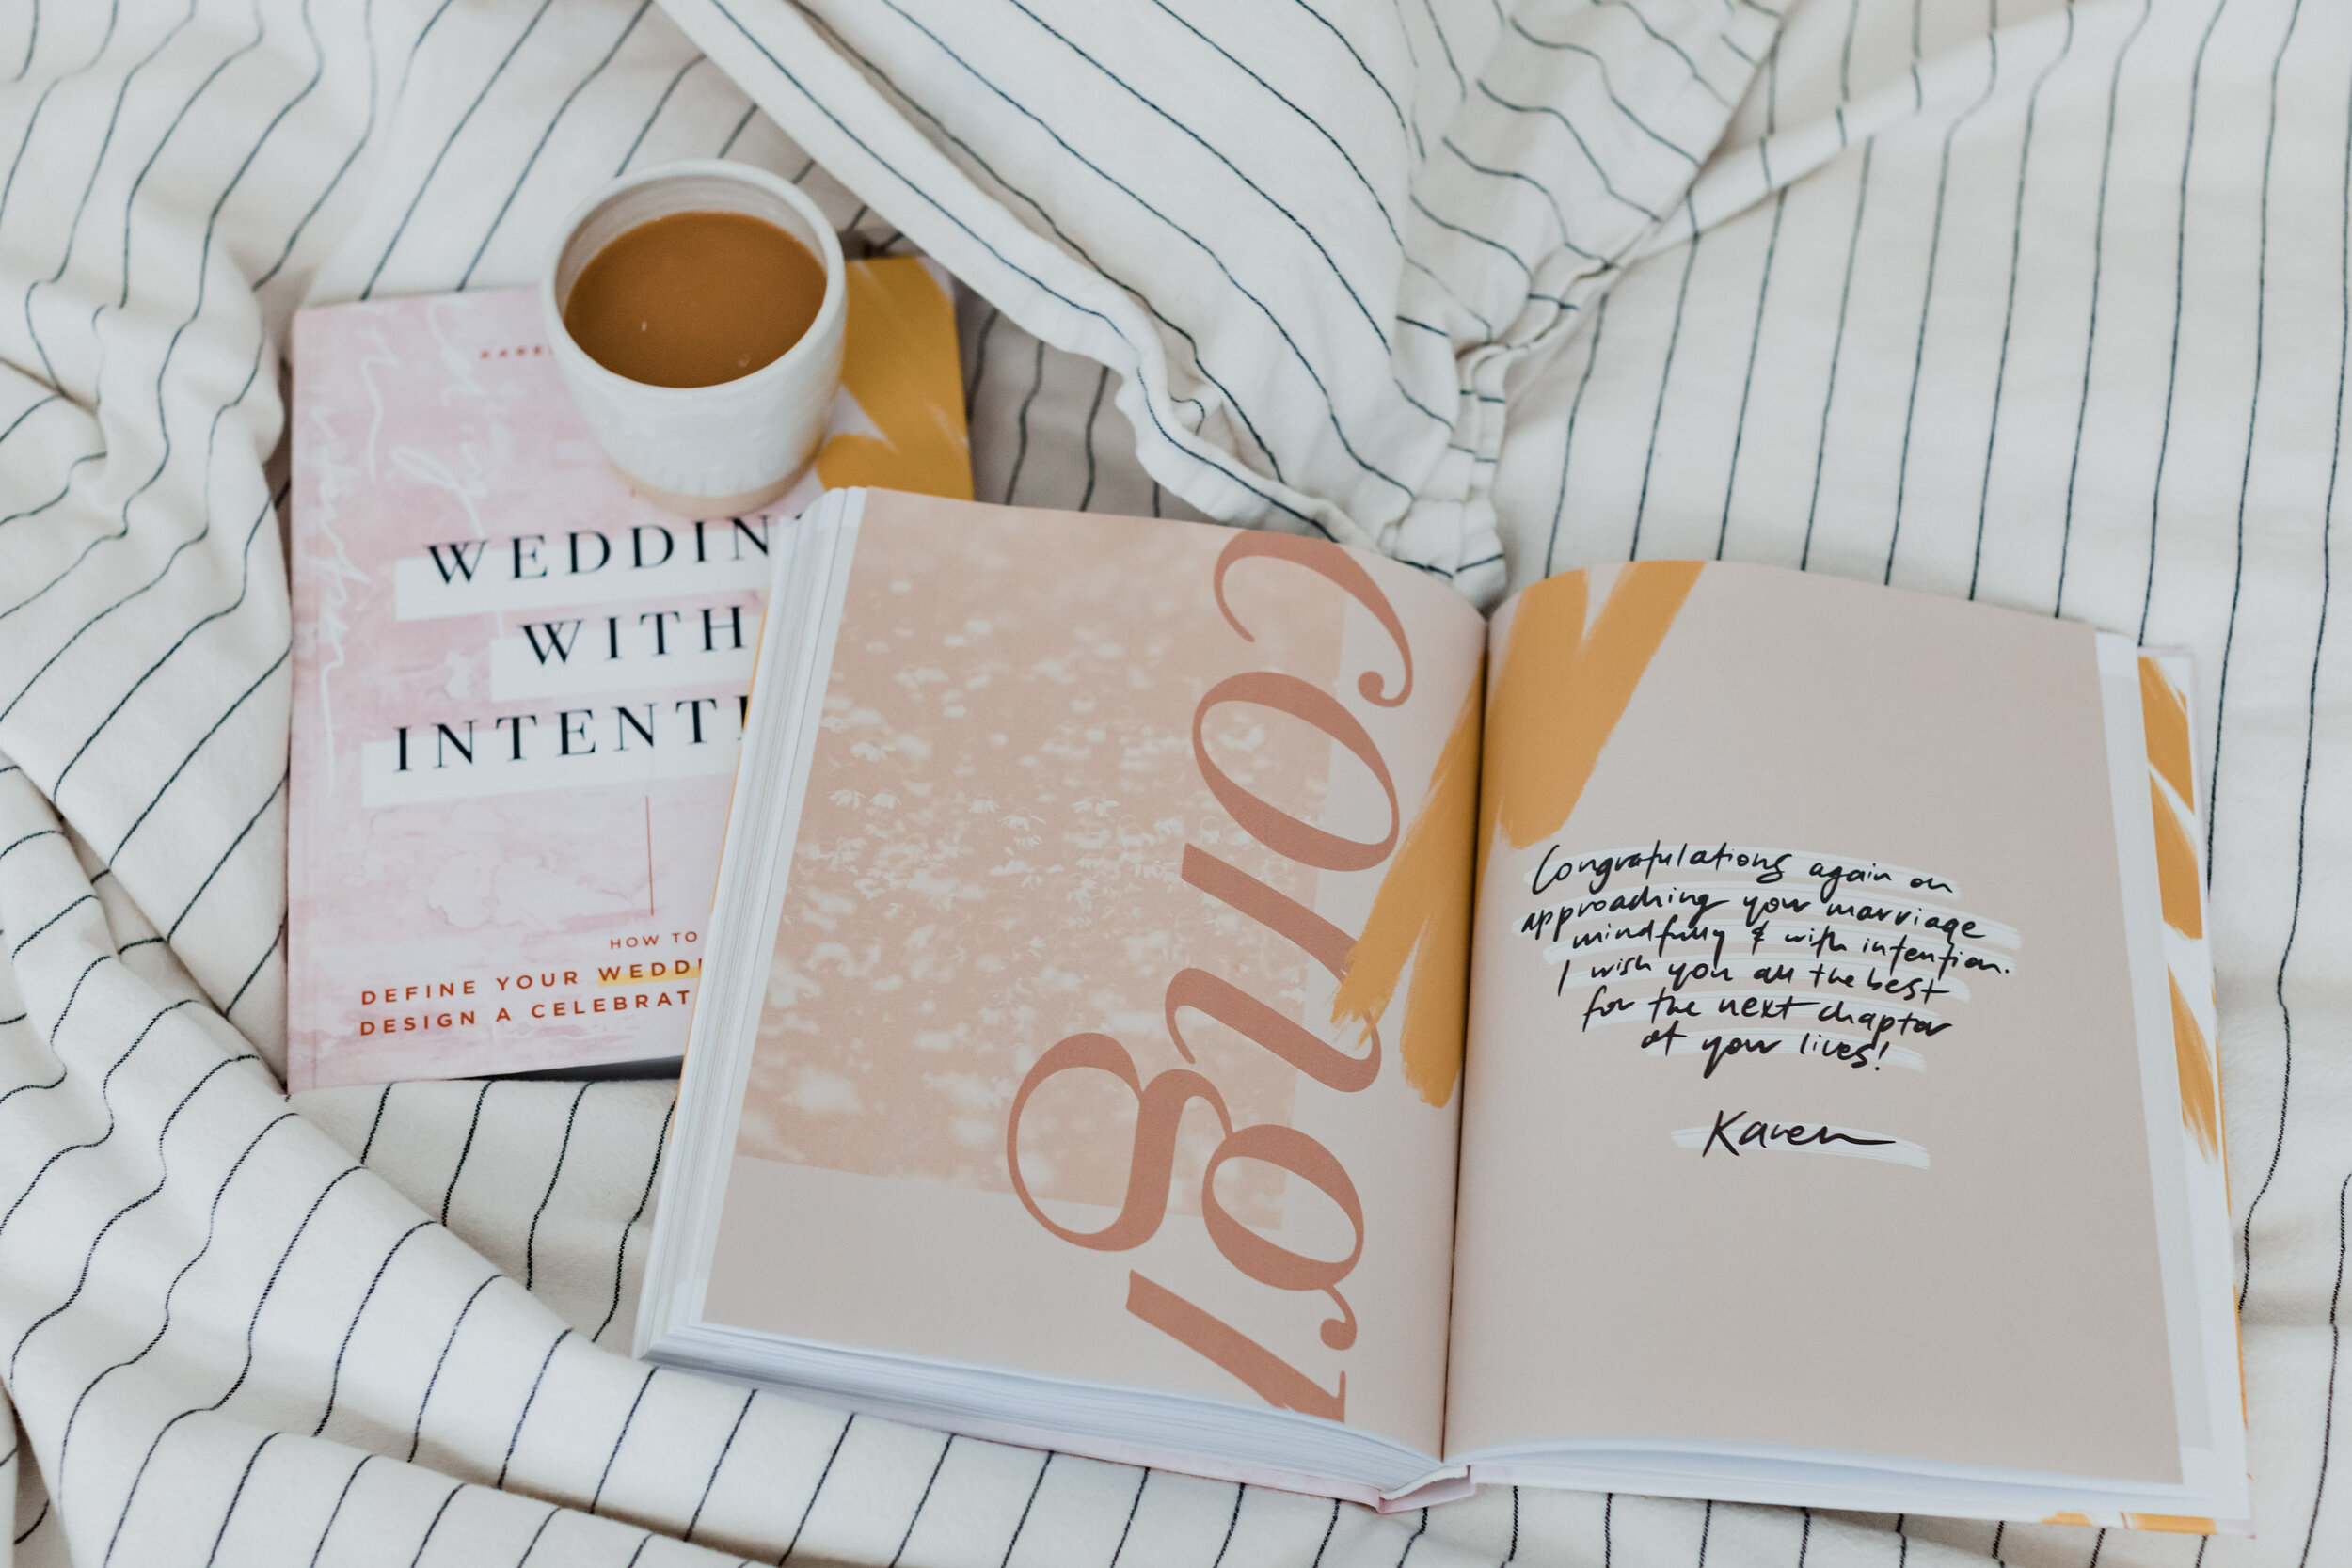 wedding planning book - wedding with intention.jpg